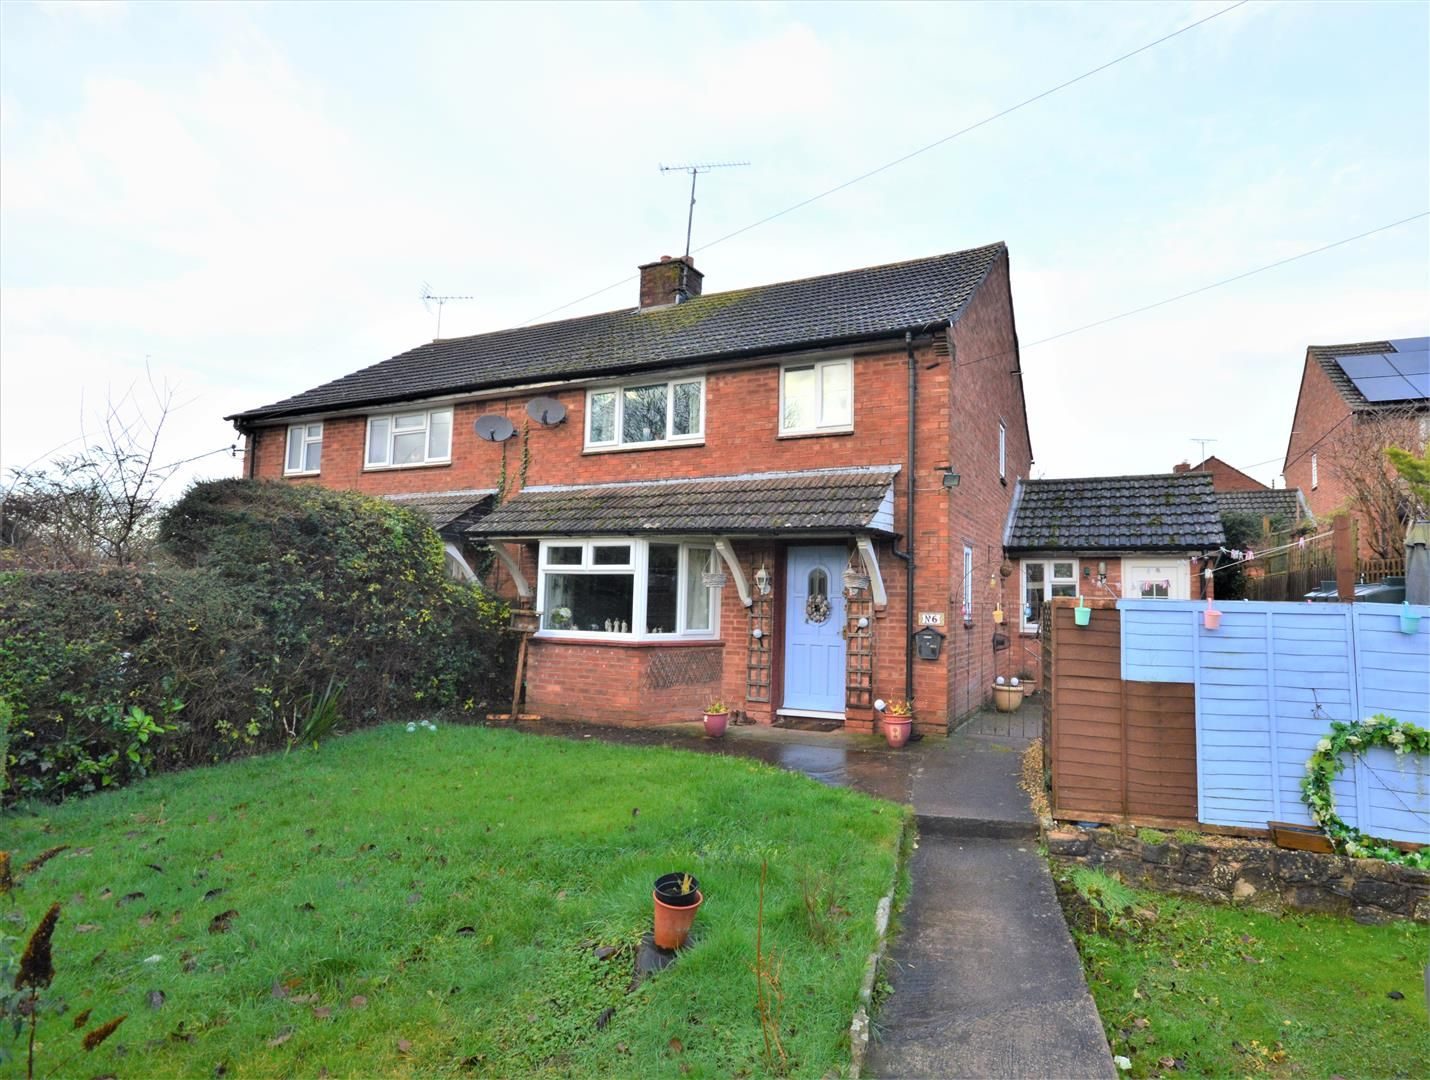 3 bed semi-detached for sale in Much Birch 13